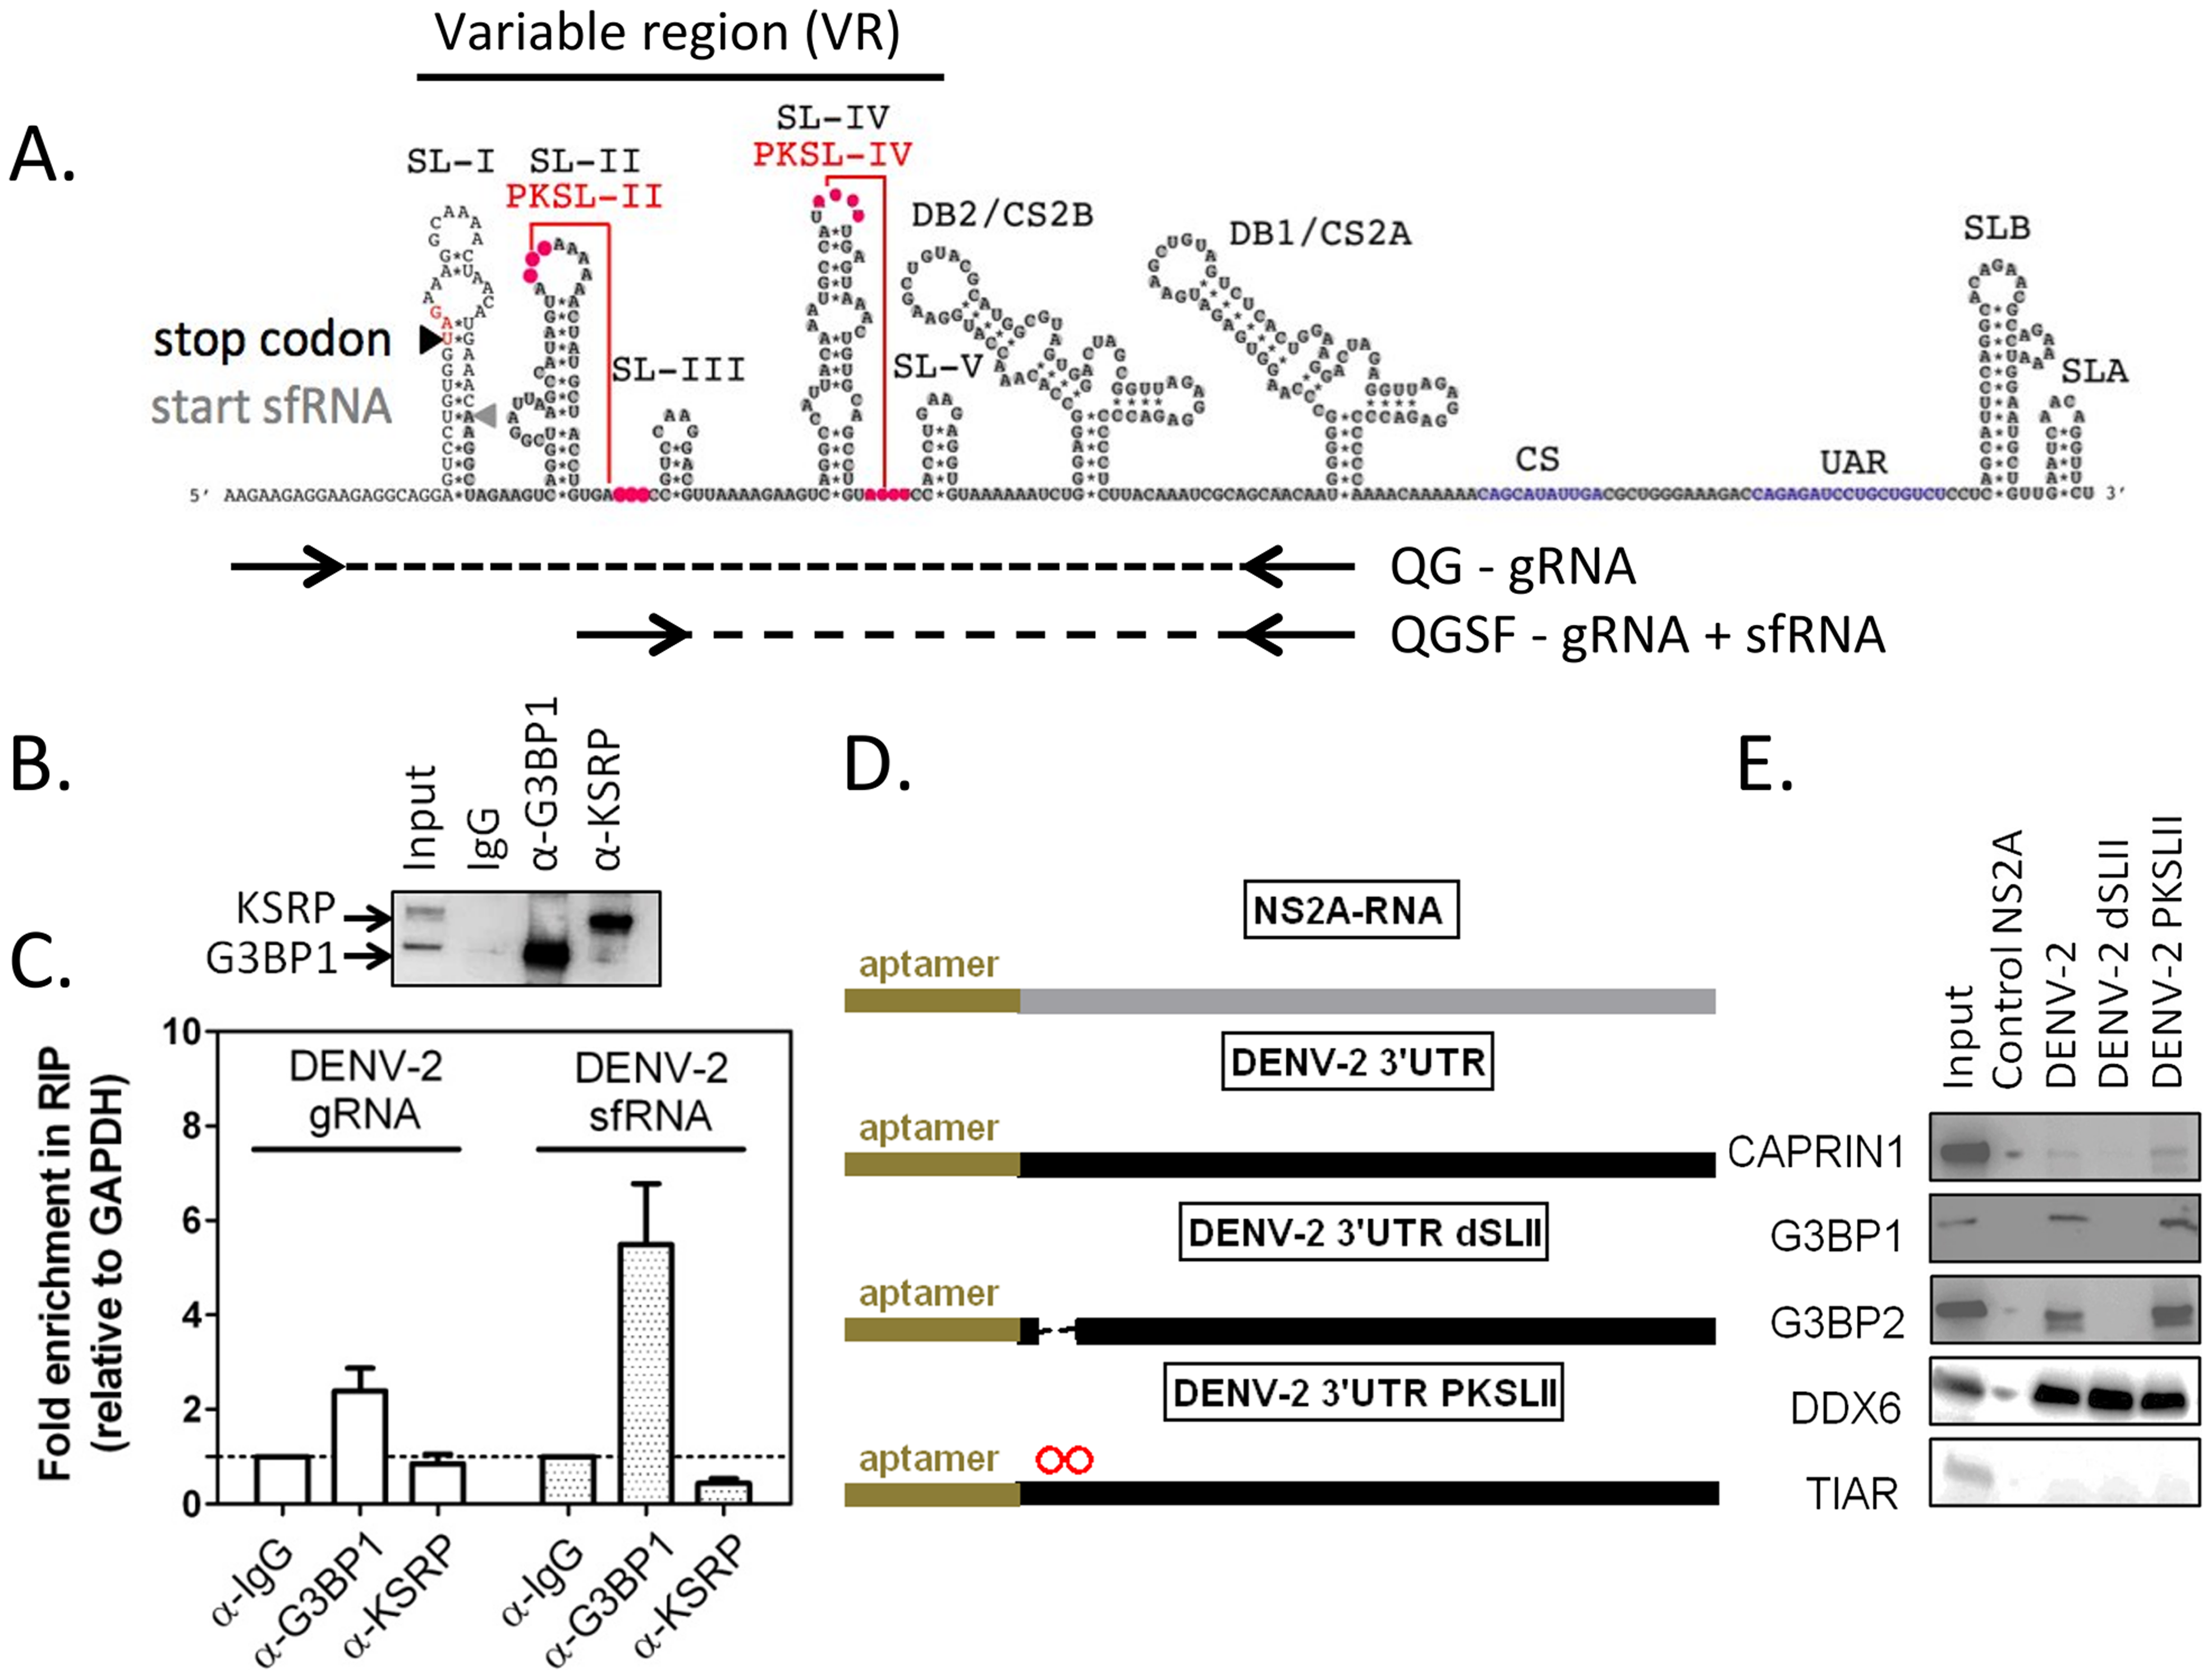 G3BP1, G3BP2 and CAPRIN1 interact with DENV-2 gRNA and sfRNA in infected cells.